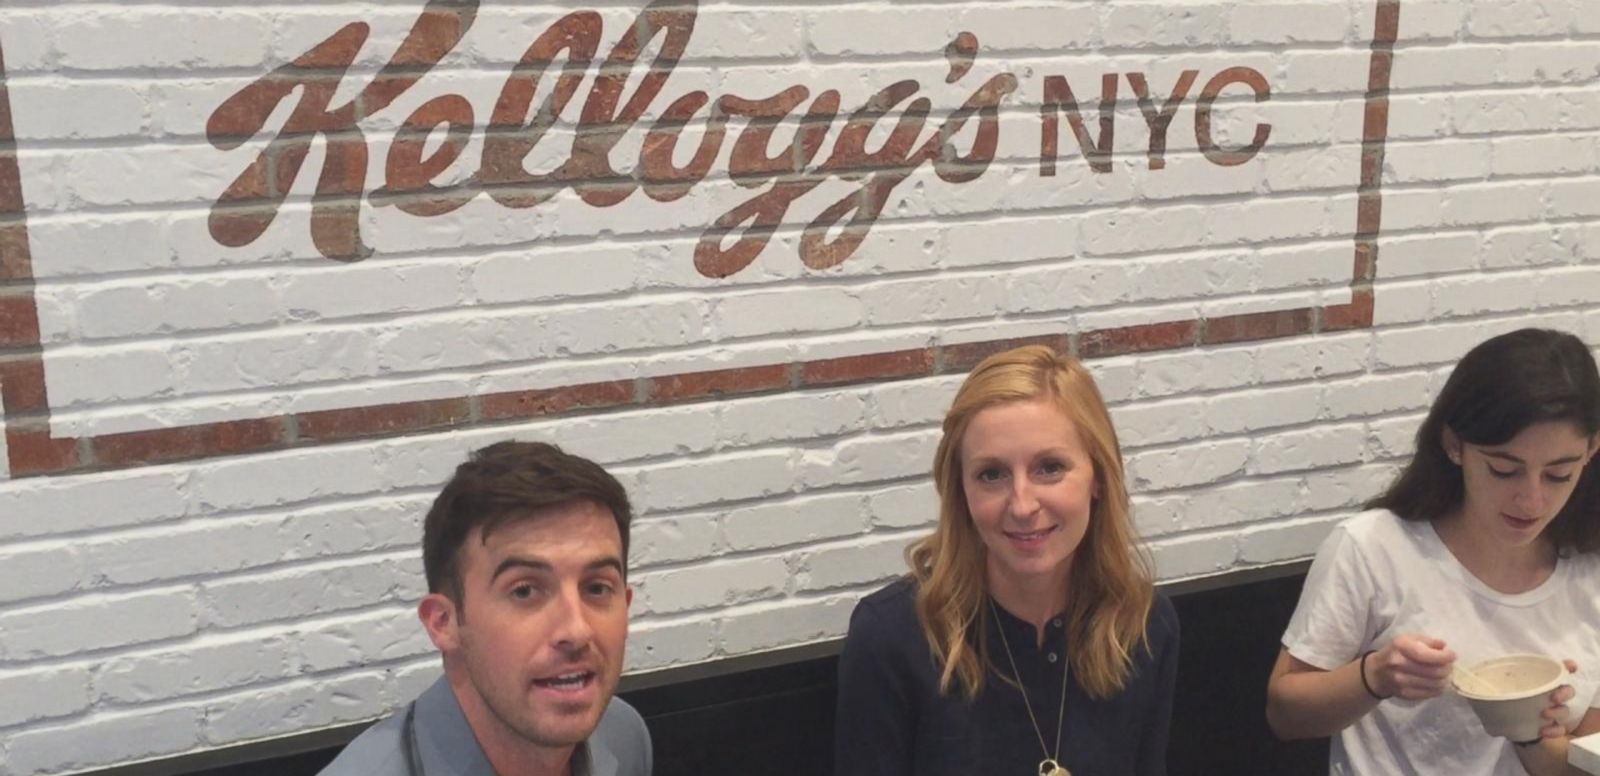 VIDEO: Get Your Breakfast Fix All Day at NYC's Kellogg's Cafe